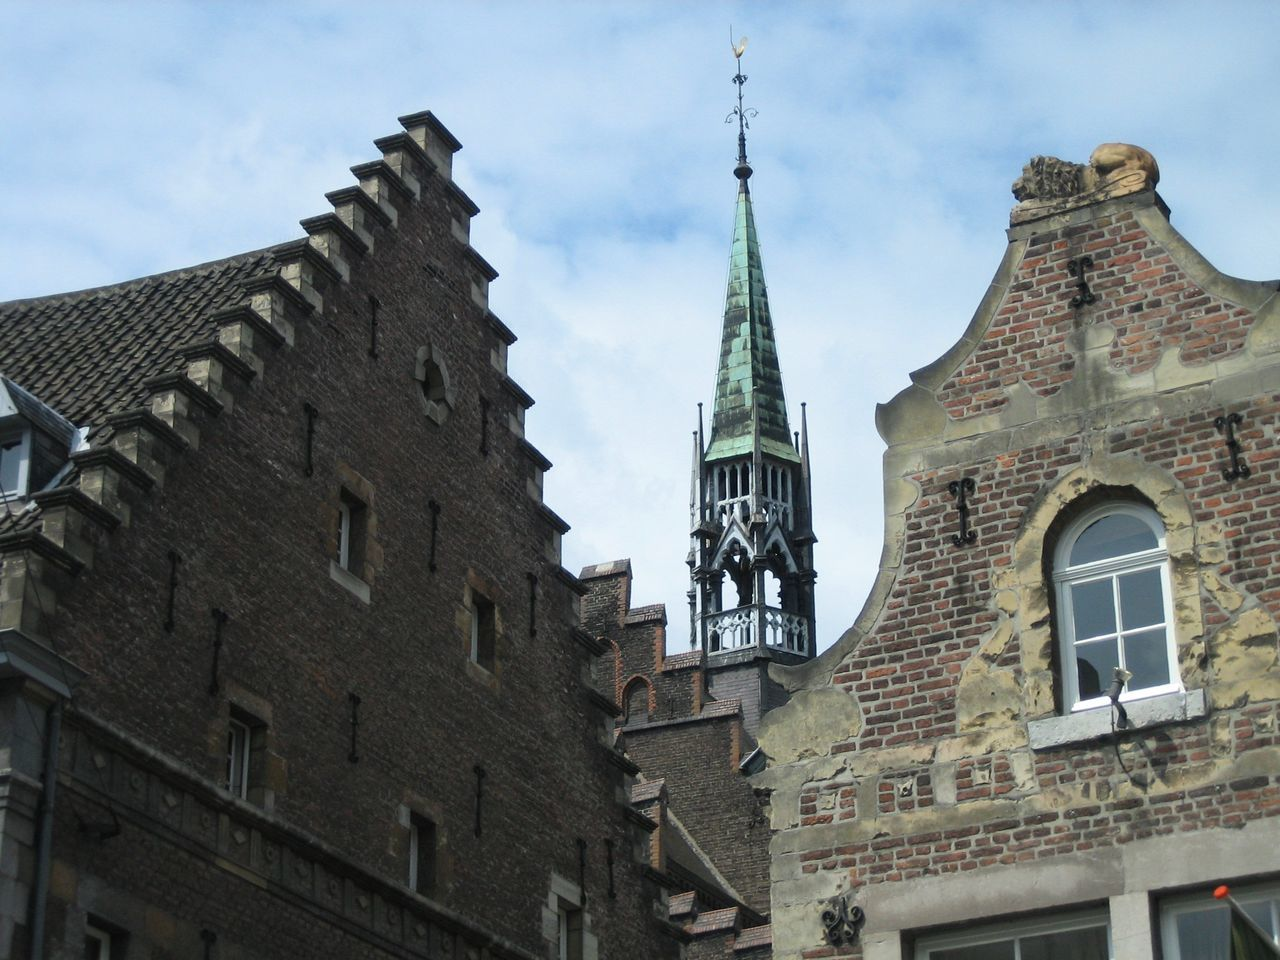 Maastricht - one of the most beautiful cities in Holand (from my point of view). Architecture Building Exterior Built Structure Cultural Center Day Dutch Architecture Dutch Cities Historic Center Of The City Holland Sky My Favorite Place